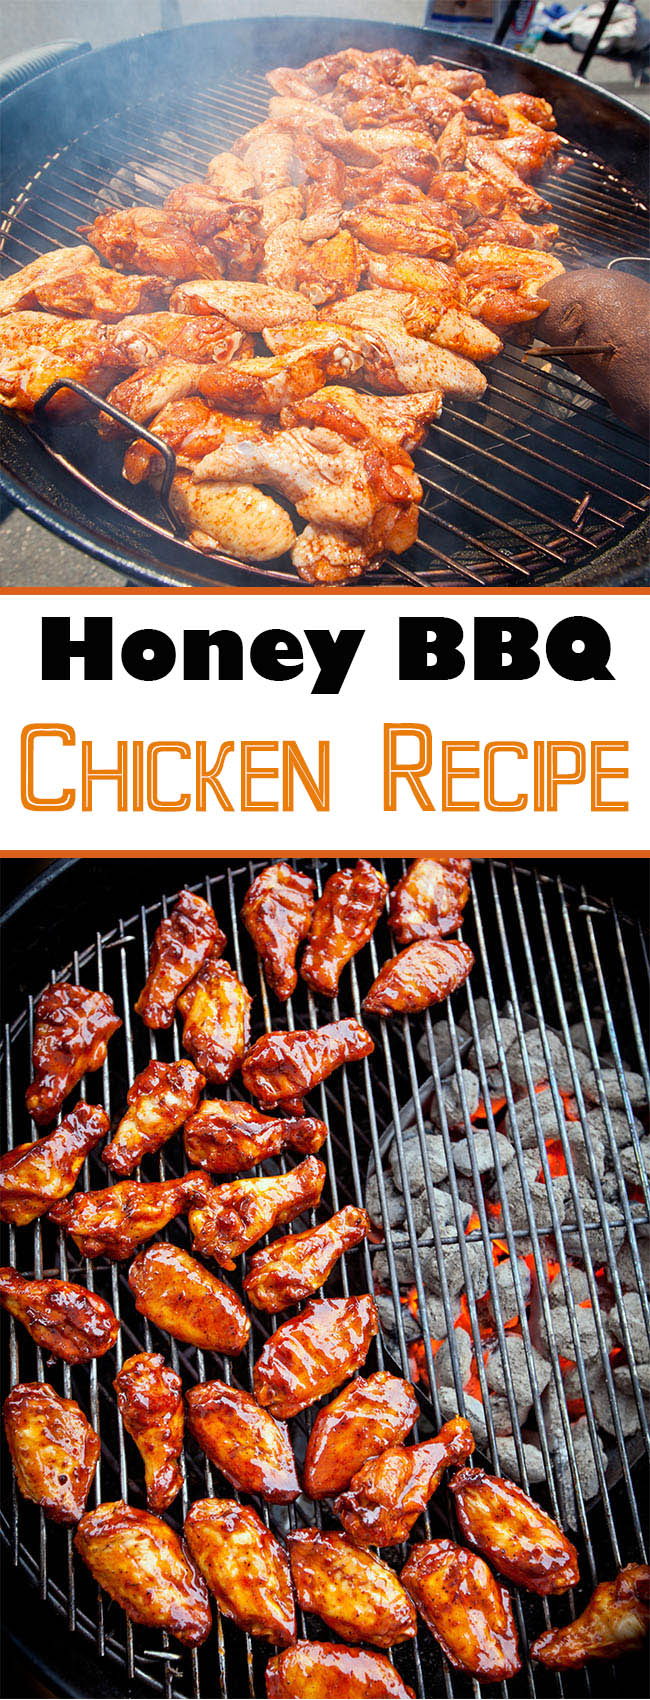 Honey BBQ Chicken - Honey BBQ Chicken Recipe